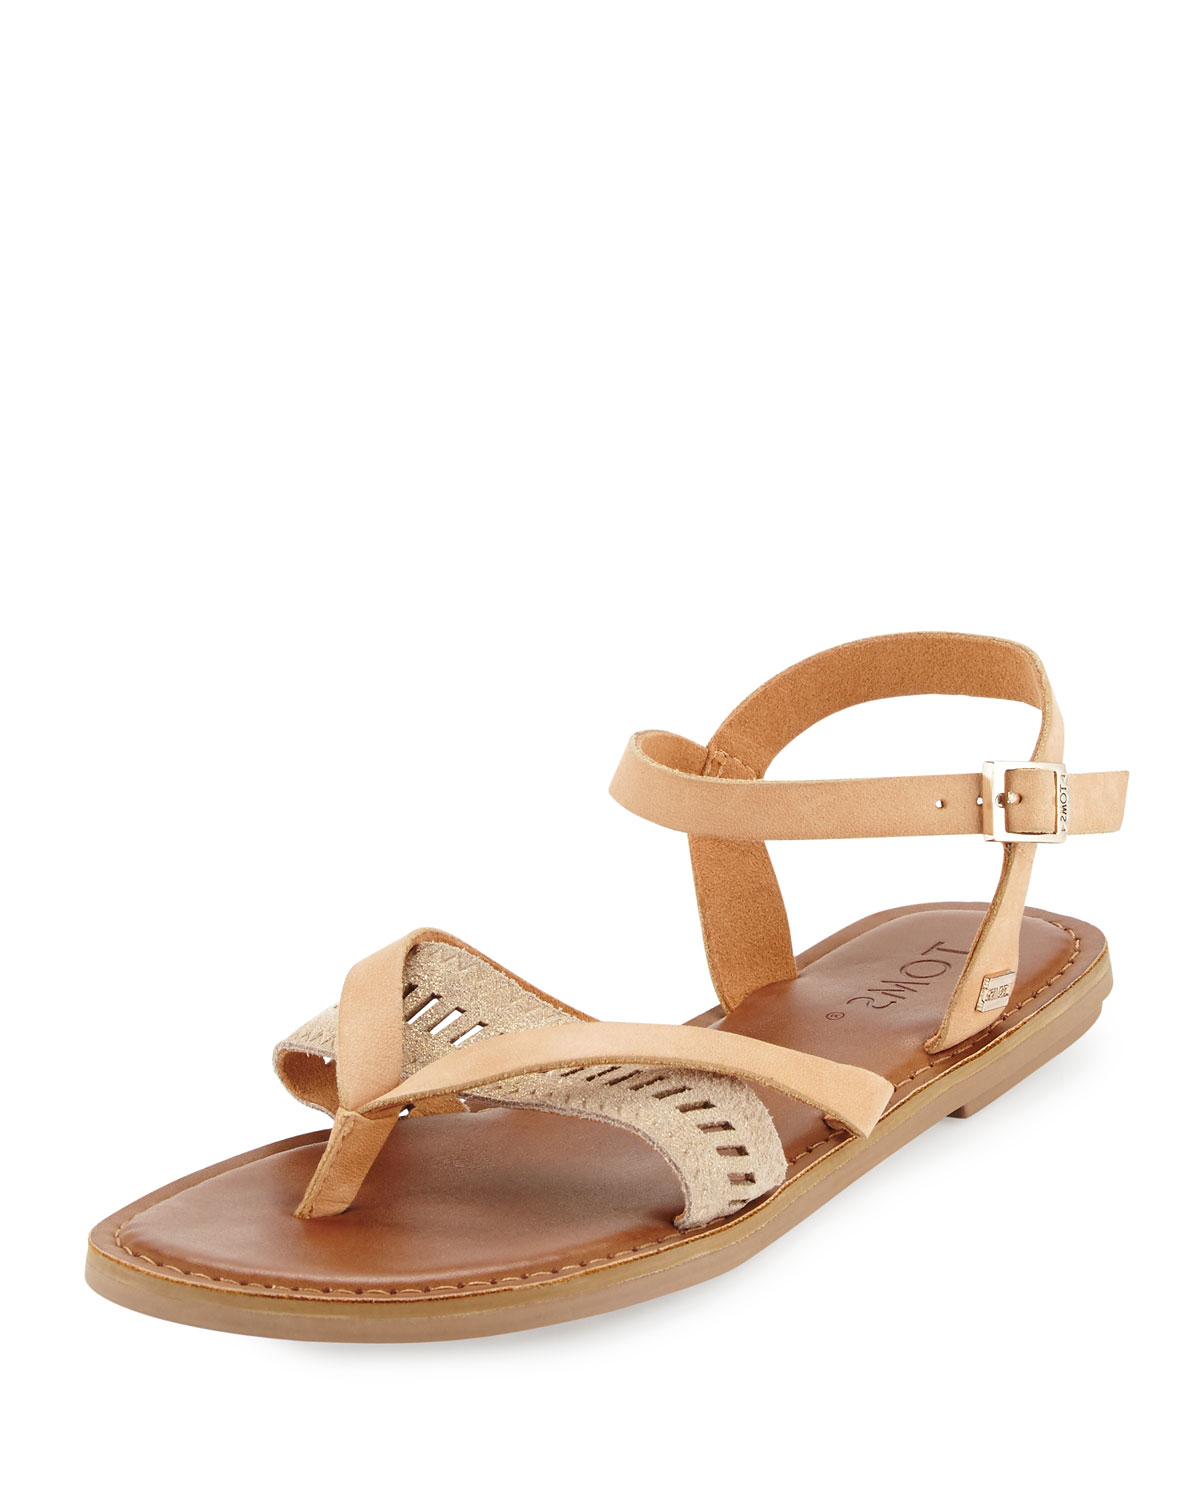 Toms Lexie Suede Sandals In Beige Natural Lyst